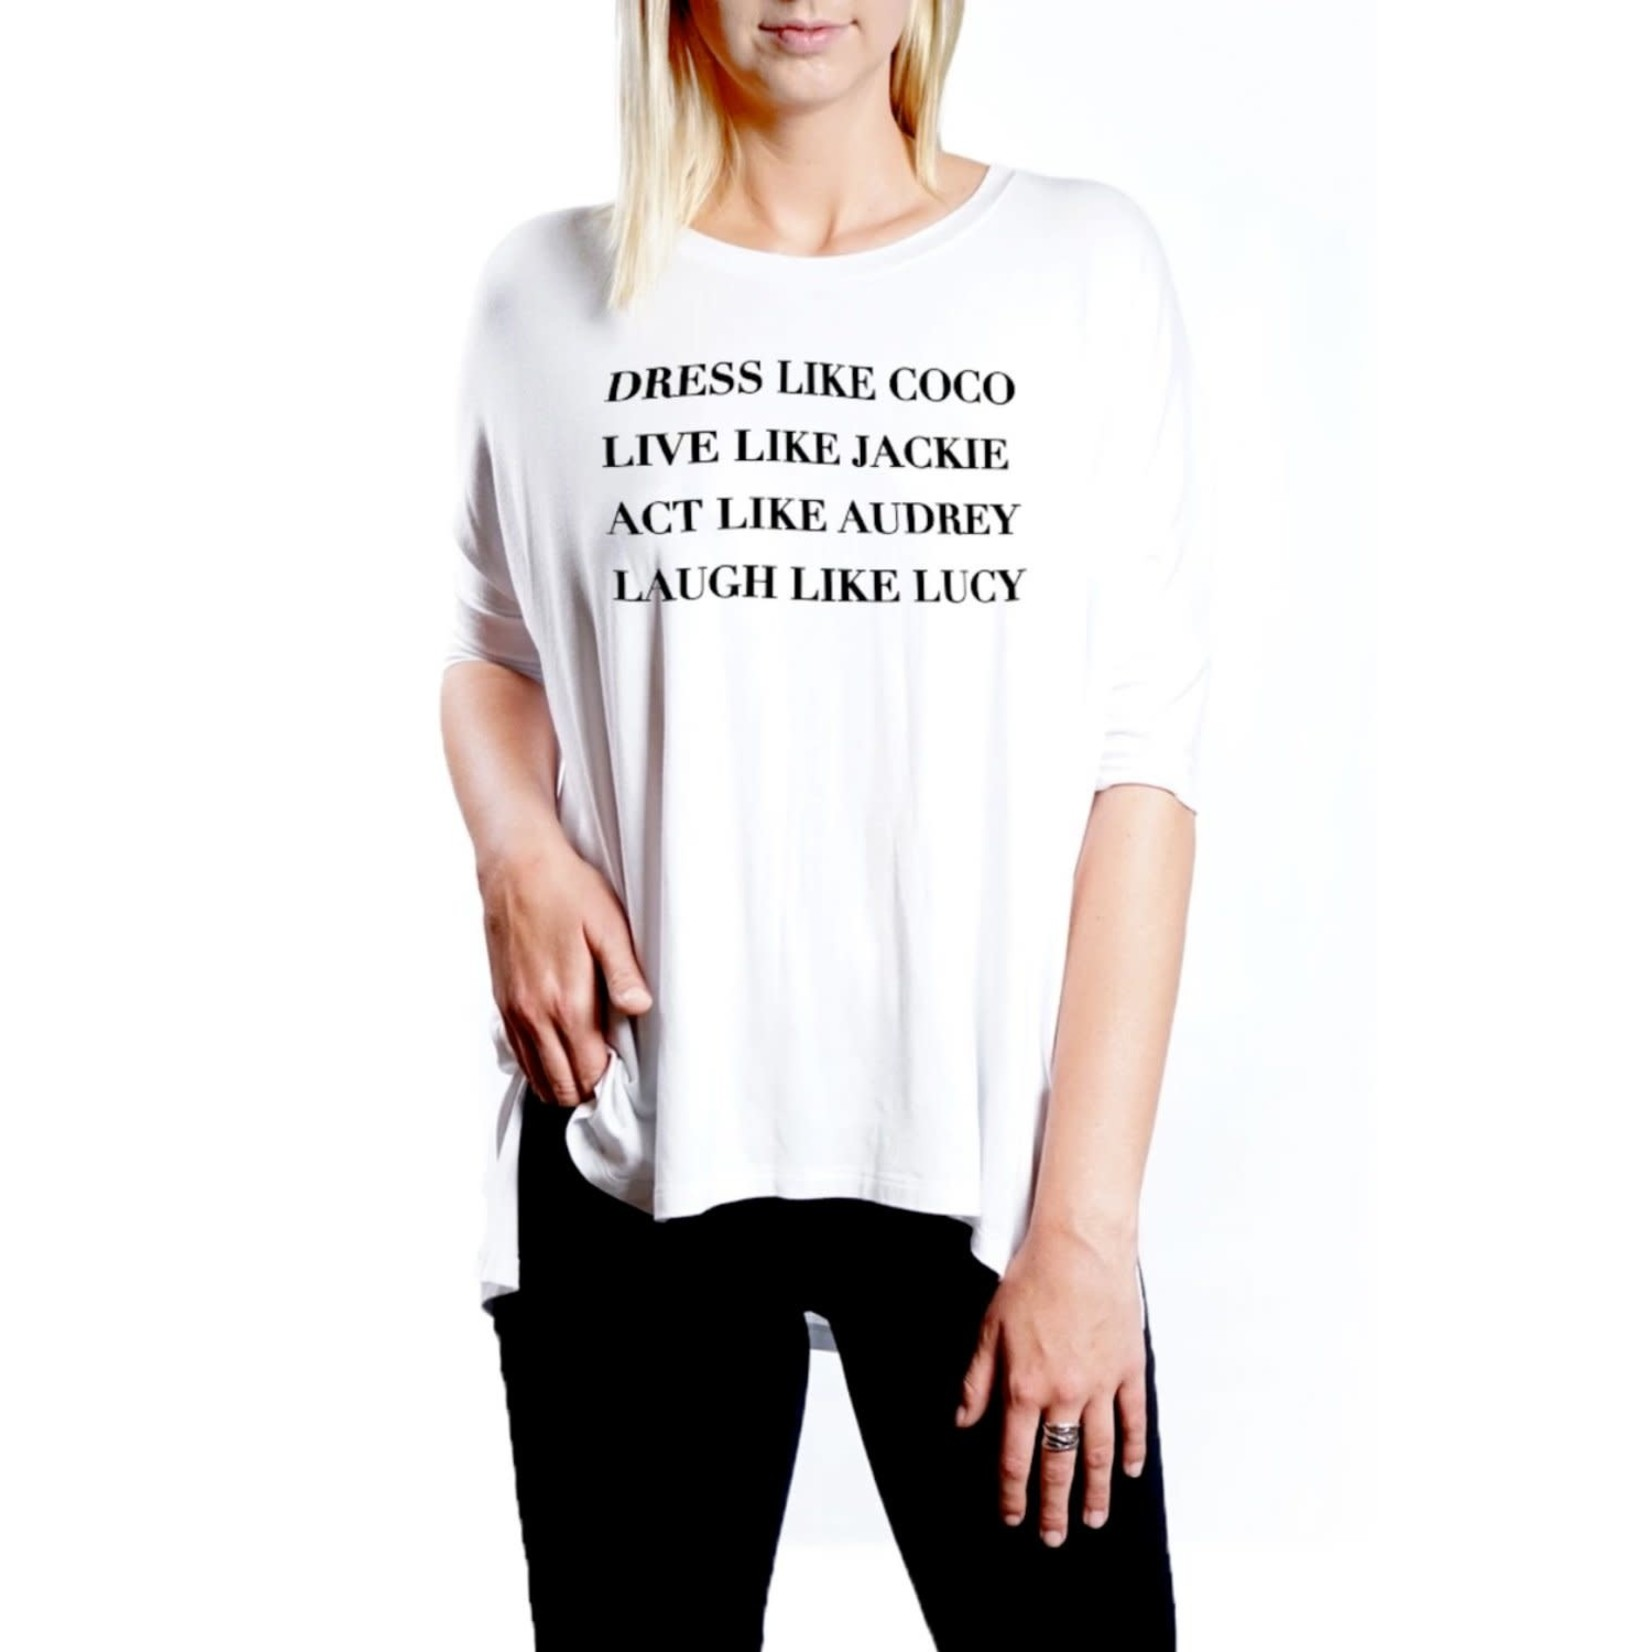 Los Angeles Trading Co Dress Like Coco One-Size Tee in White